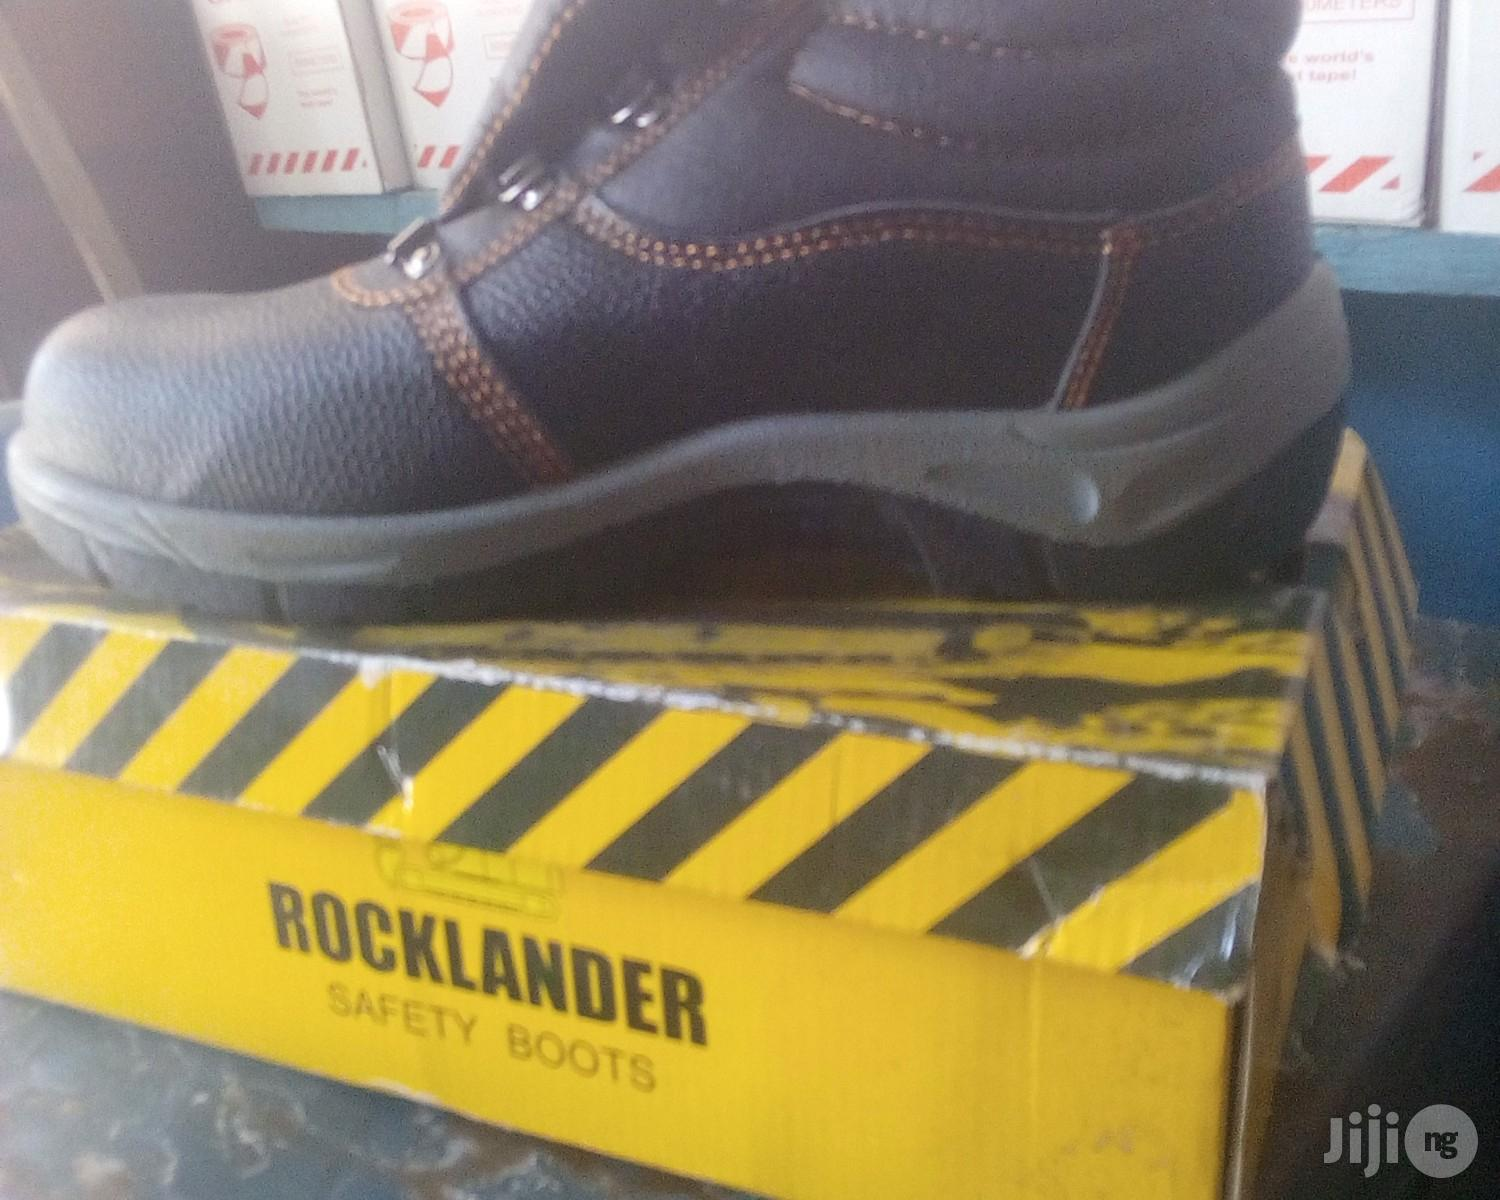 Safety Boots   Shoes for sale in Central Business District, Abuja (FCT) State, Nigeria